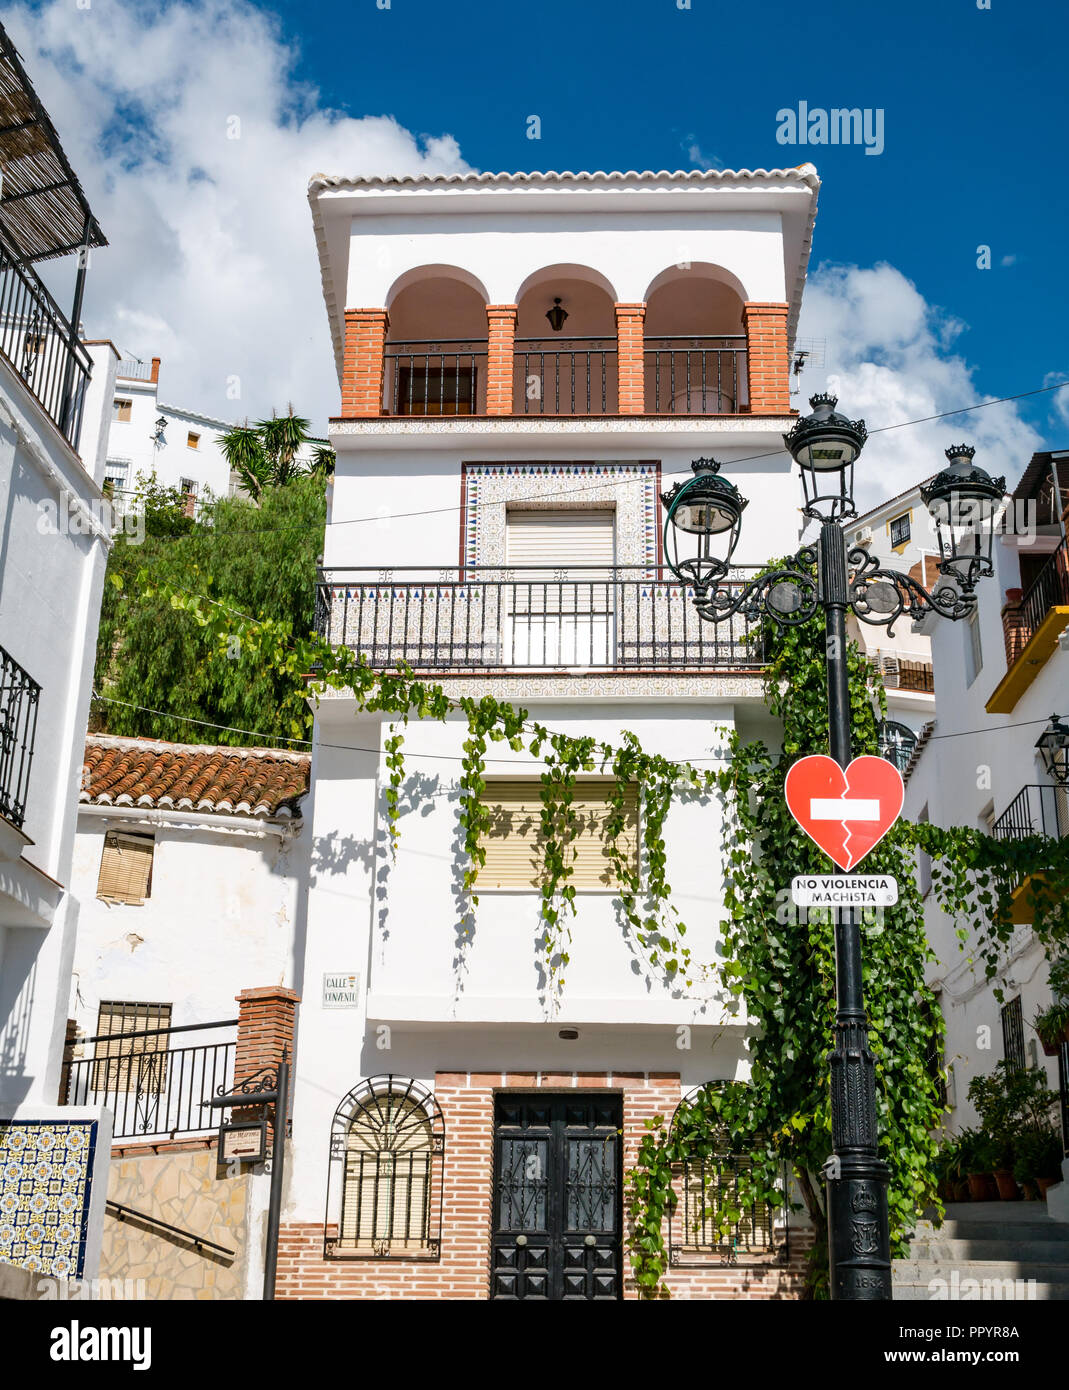 Pretty white houses with zero tolerance of domestic violence sign in Spanish, Canillas de Acientuna, Axarquia, Andalusia, Spain - Stock Image